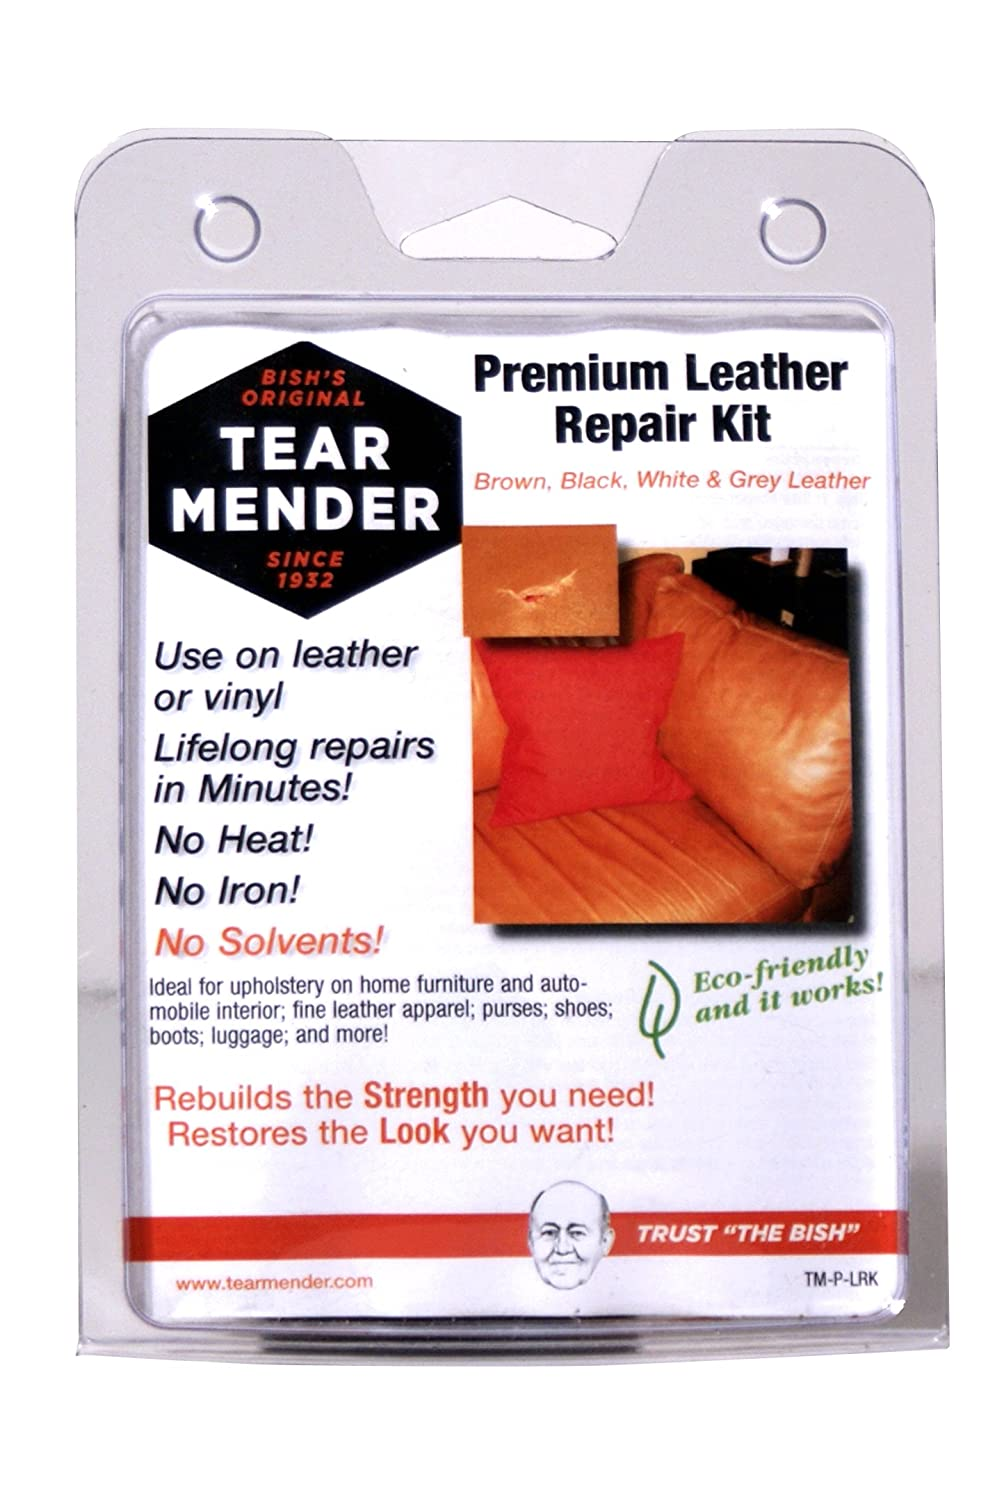 Tear Mender Leather Repair Kit with Patches and Color Refinish Compound, 2 oz Bottle, TM-P-LRK Val-A Chicago Inc.